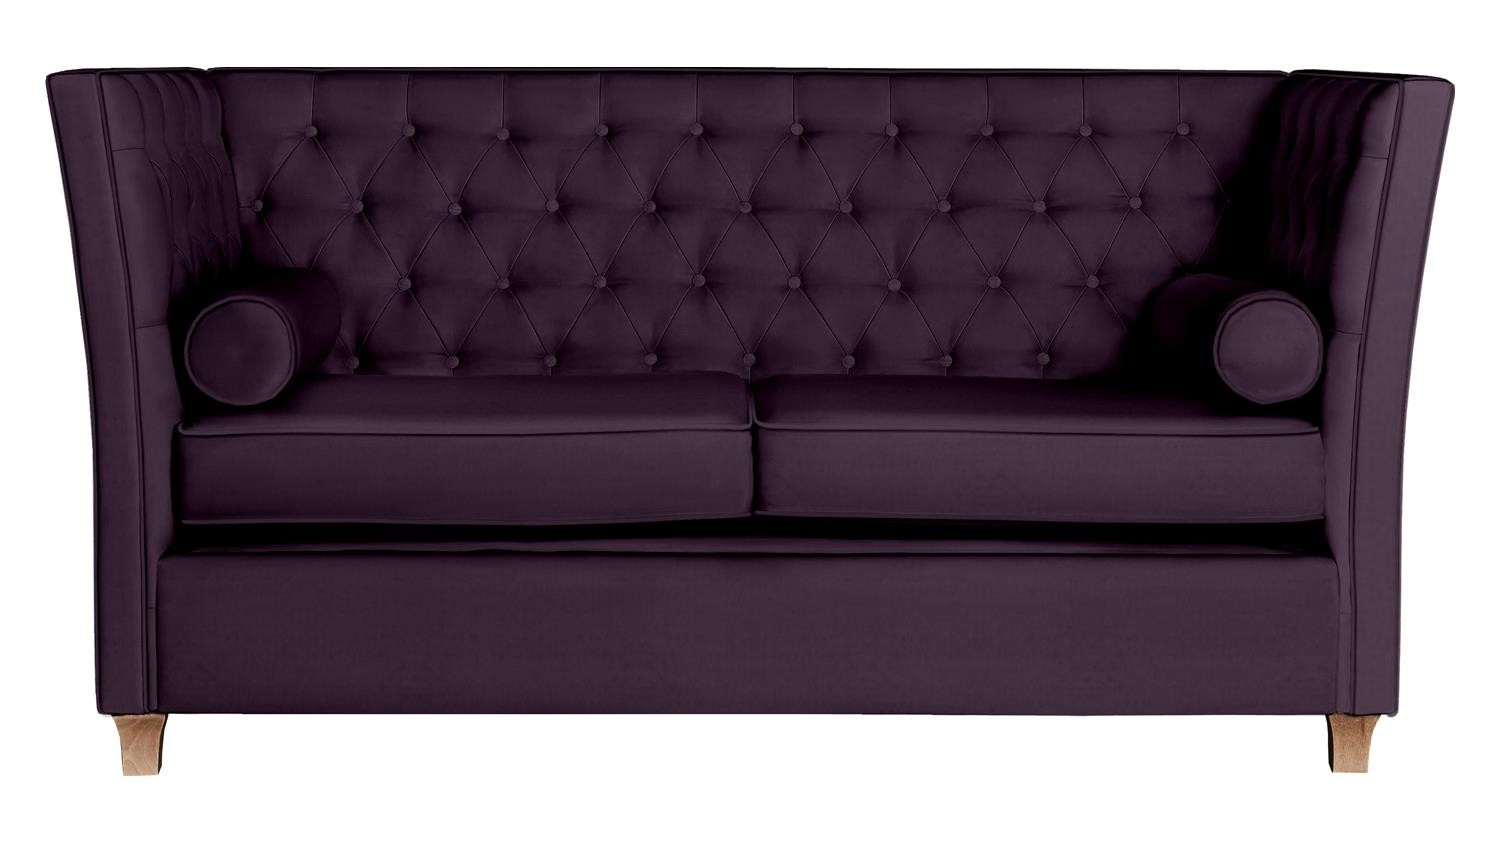 The Kingswood 3 Seater Sofa Bed